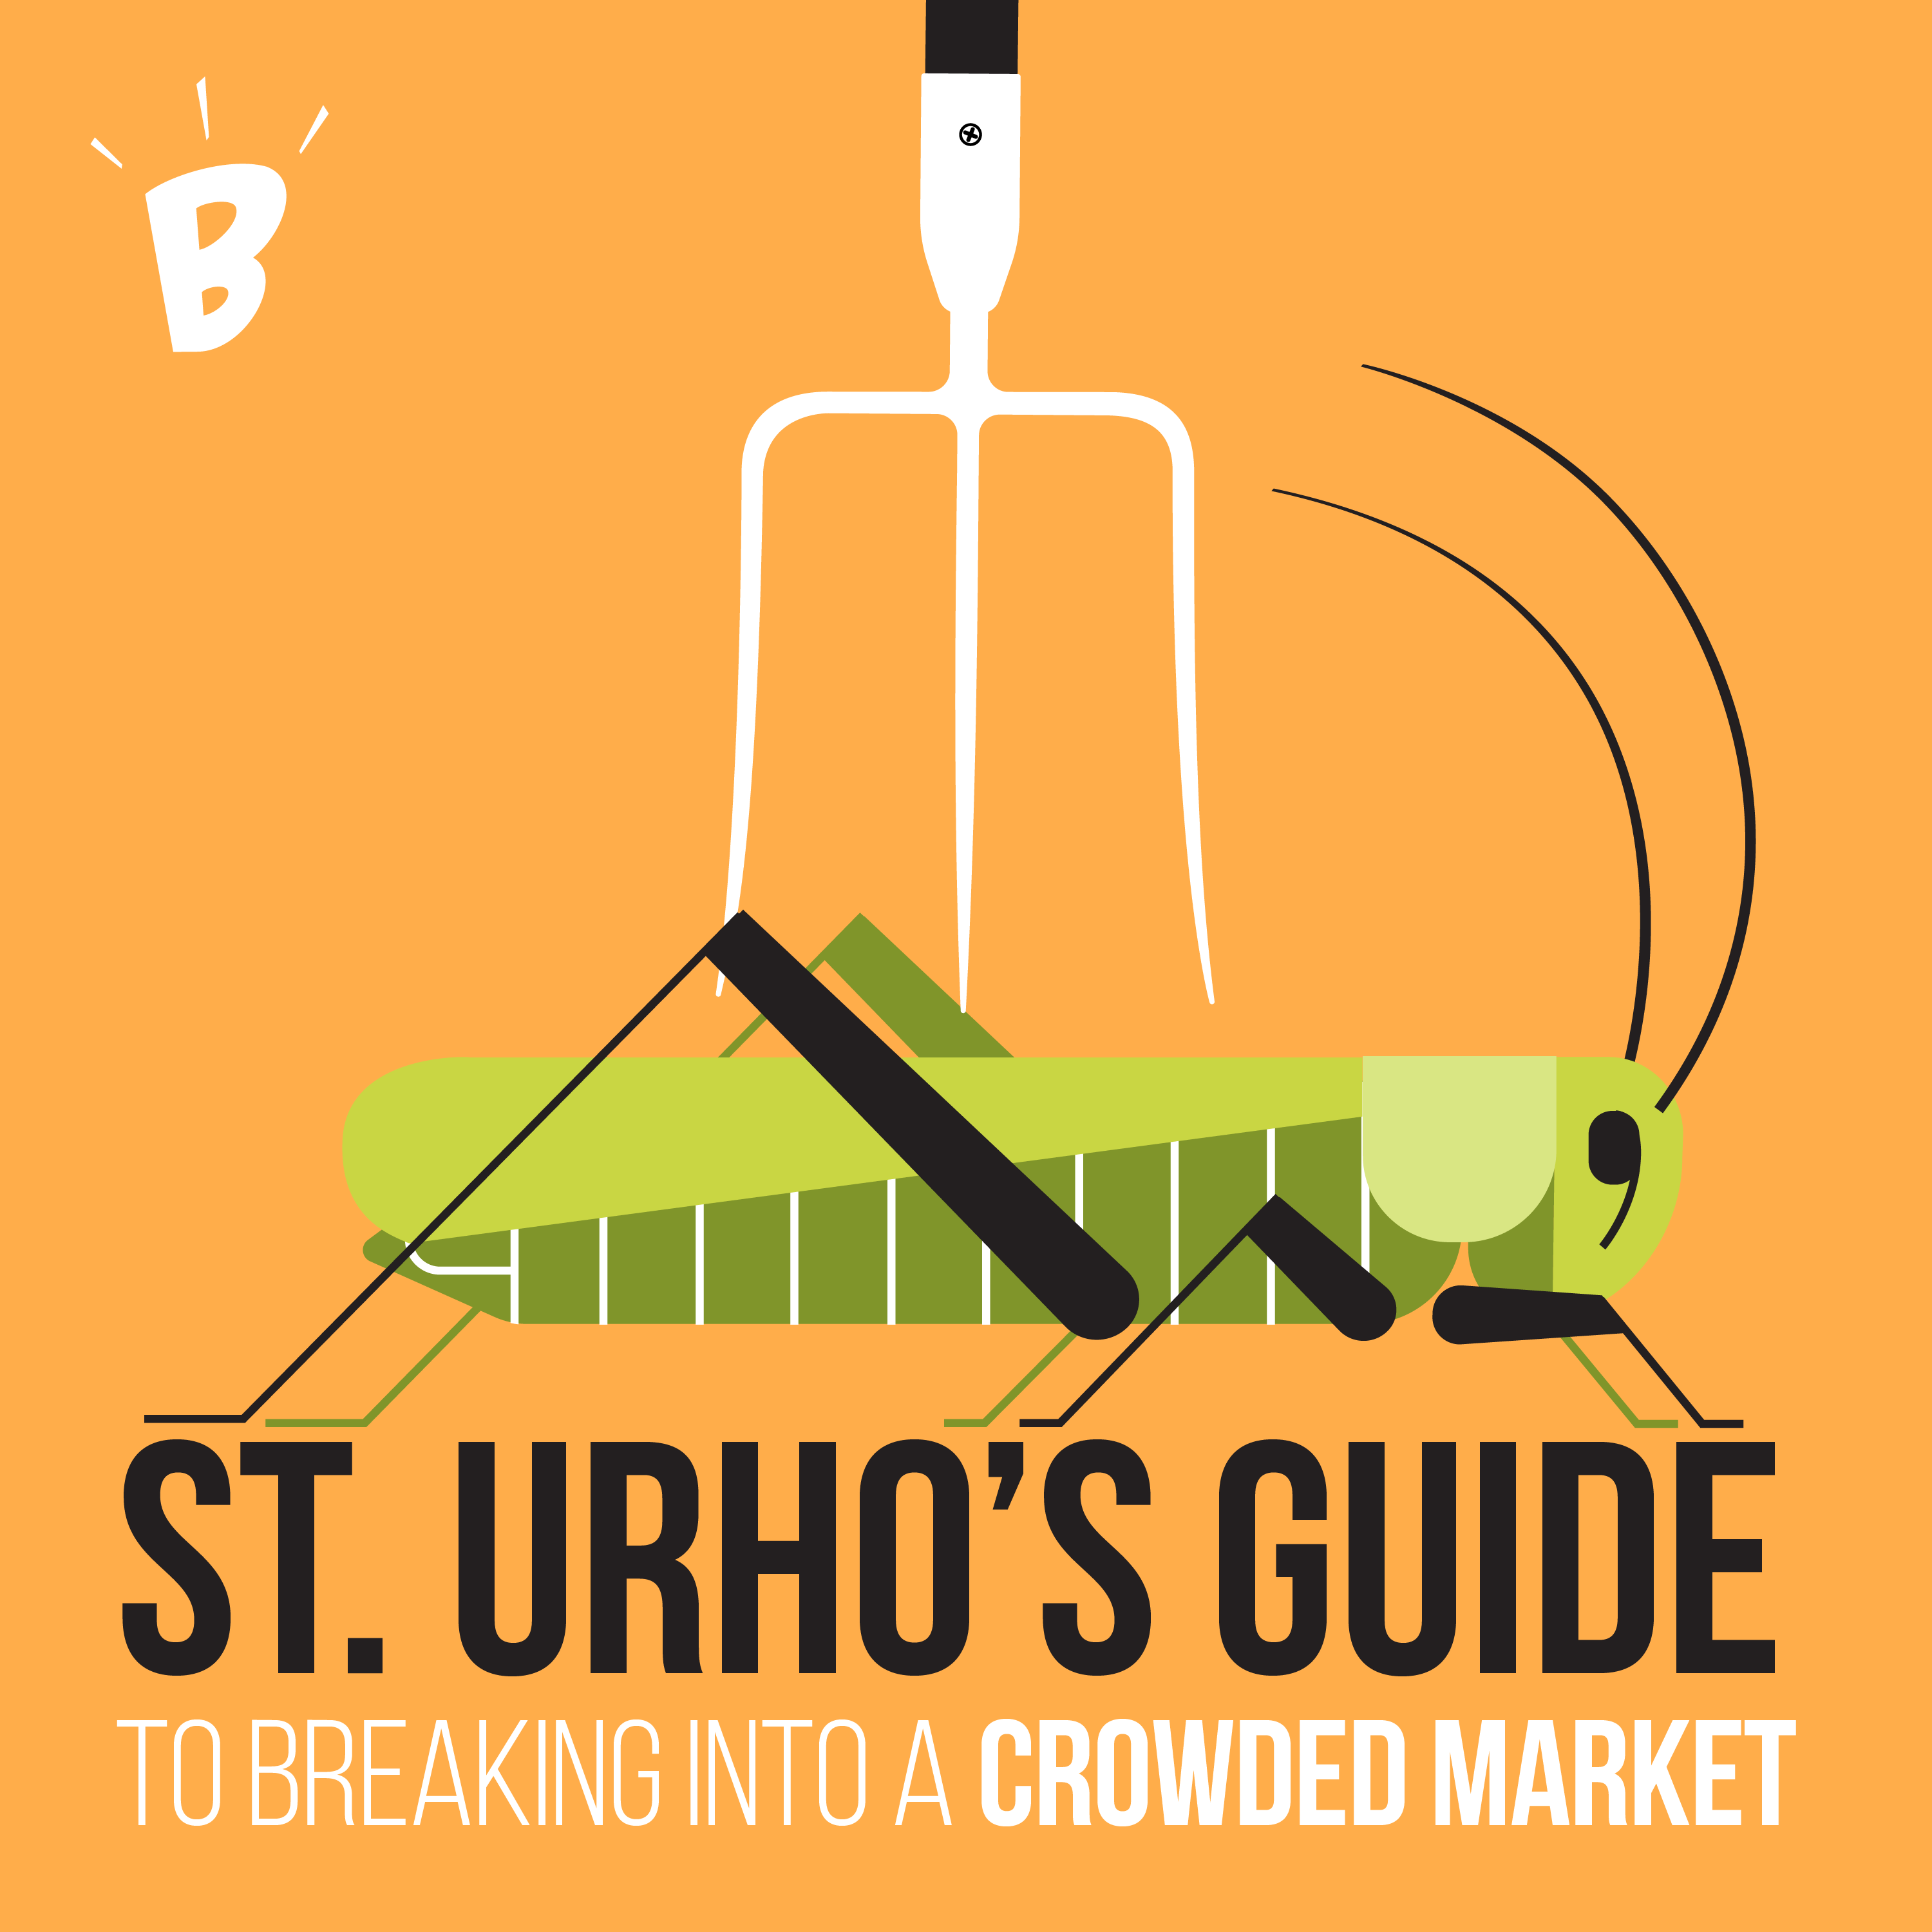 St. Urho's Guide to Breaking into a Crowded Market